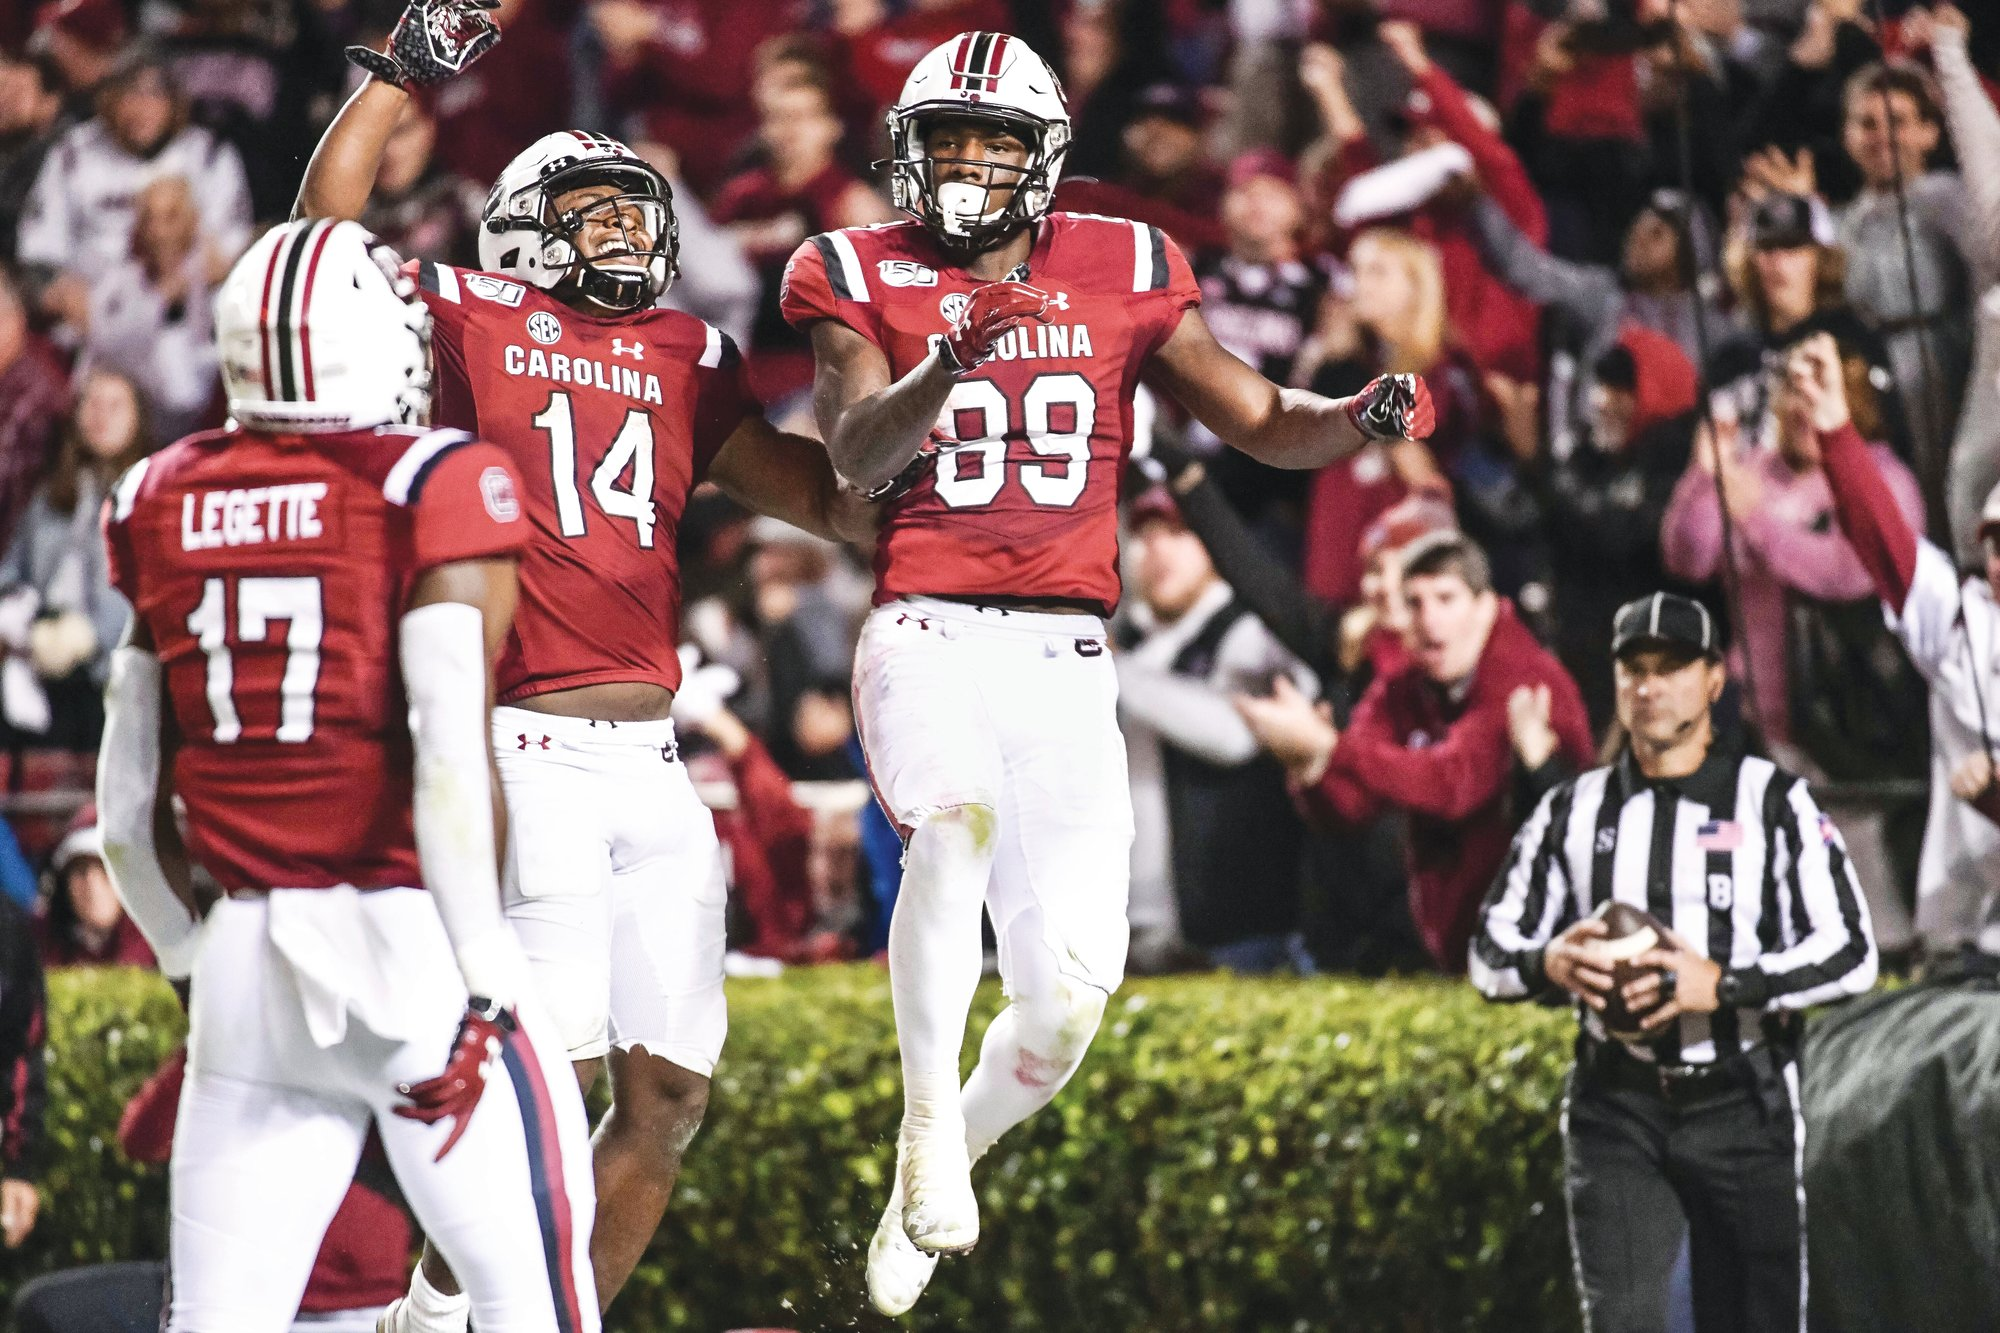 South Carolina wide receiver Bryan Edwards (89) and running back Deshaun Fenwick (14) celebrate Edwards' touchdown during the Gamecocks' 24-7 win over Vanderbilt on Saturday in Columbia.